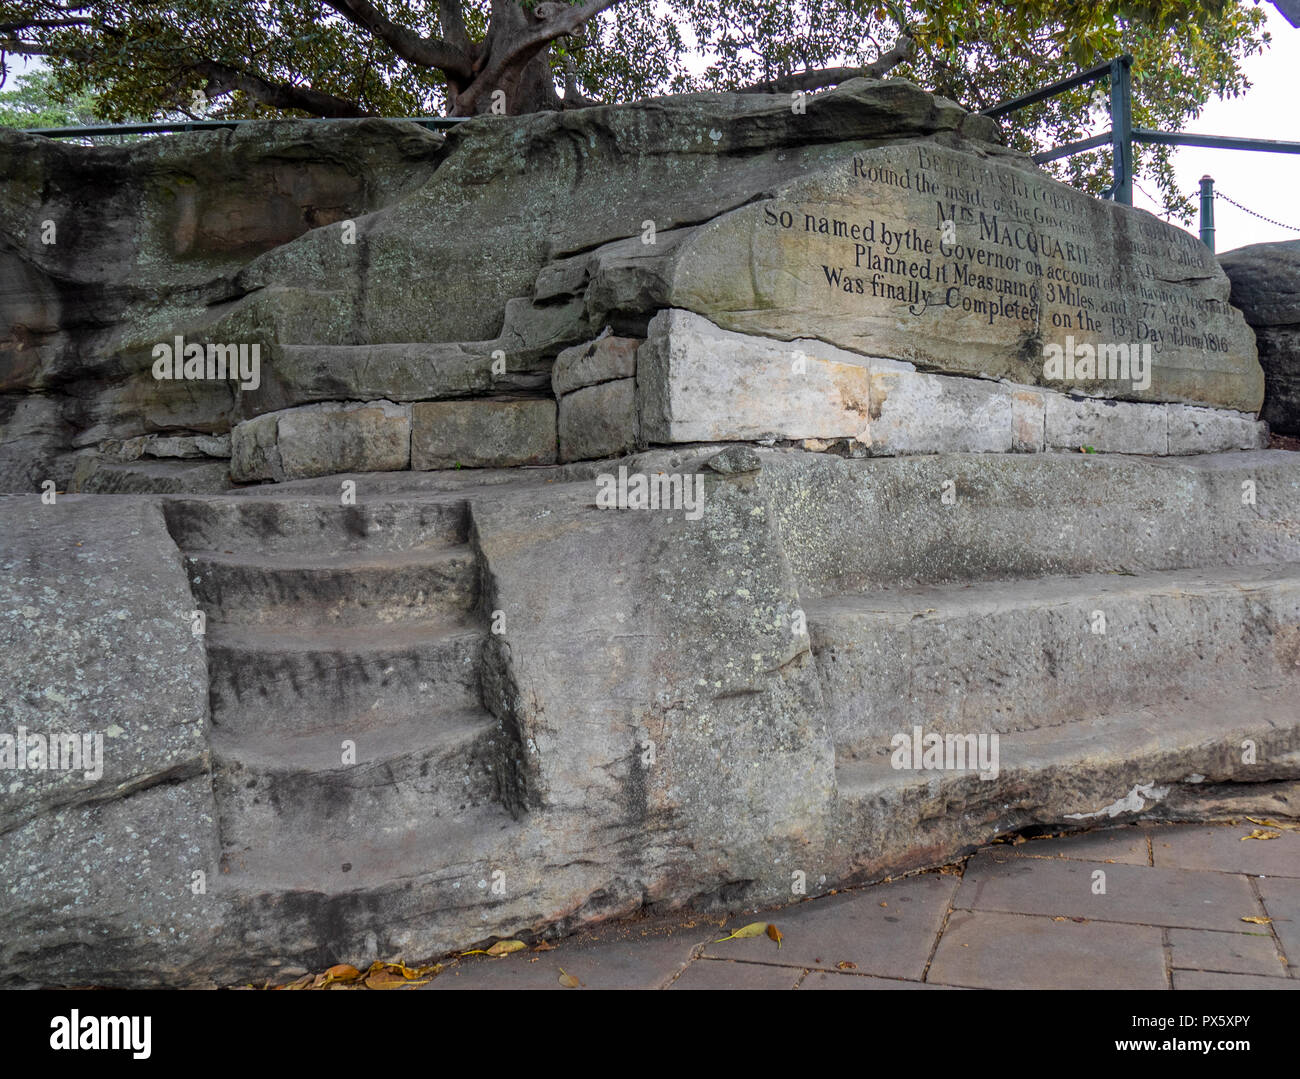 Mrs Macquaries Chair and steps carved into sandstone by convicts in the Royal Botanical Garden Sydney NSW Australia. - Stock Image